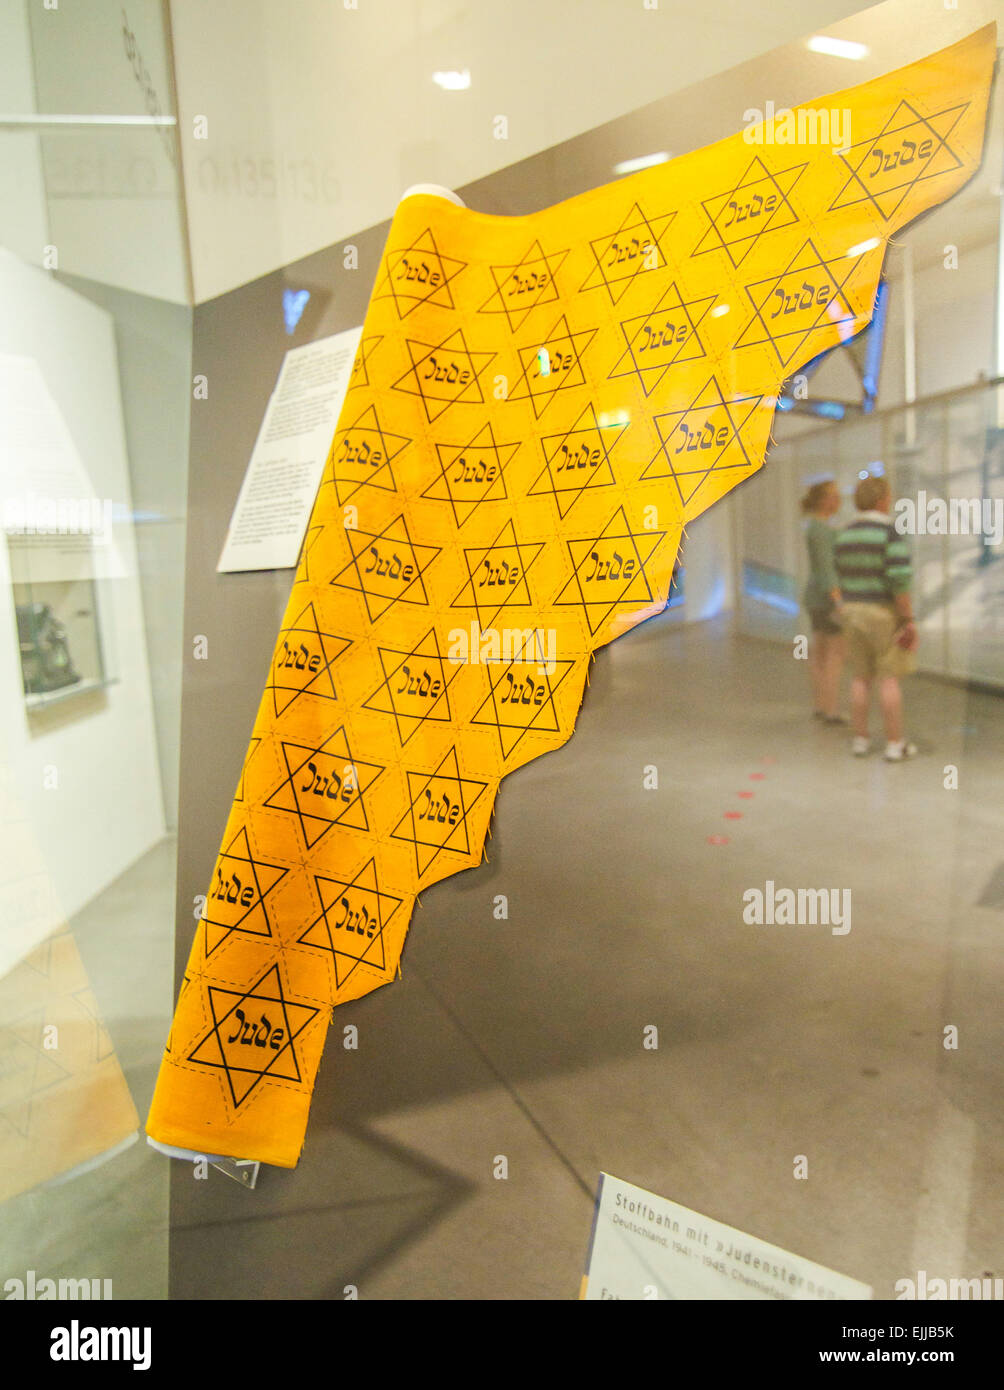 Roll of uncut yellow stars indicating that the wearer was Jewish during the Third Reich era of World War II in Europe. - Stock Image